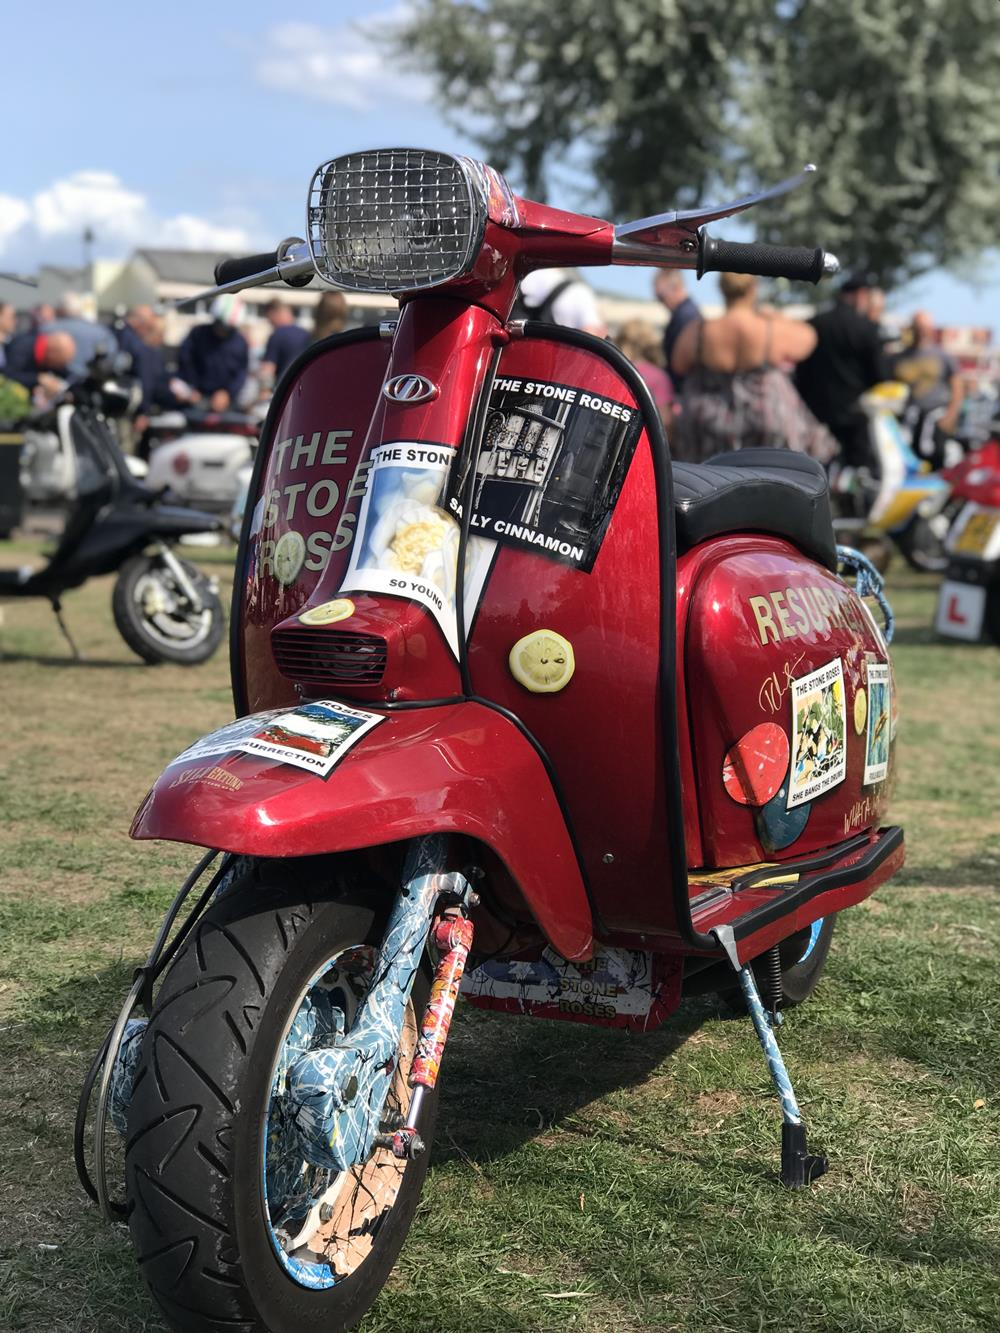 Red Lambretta with a Stone Roses theme